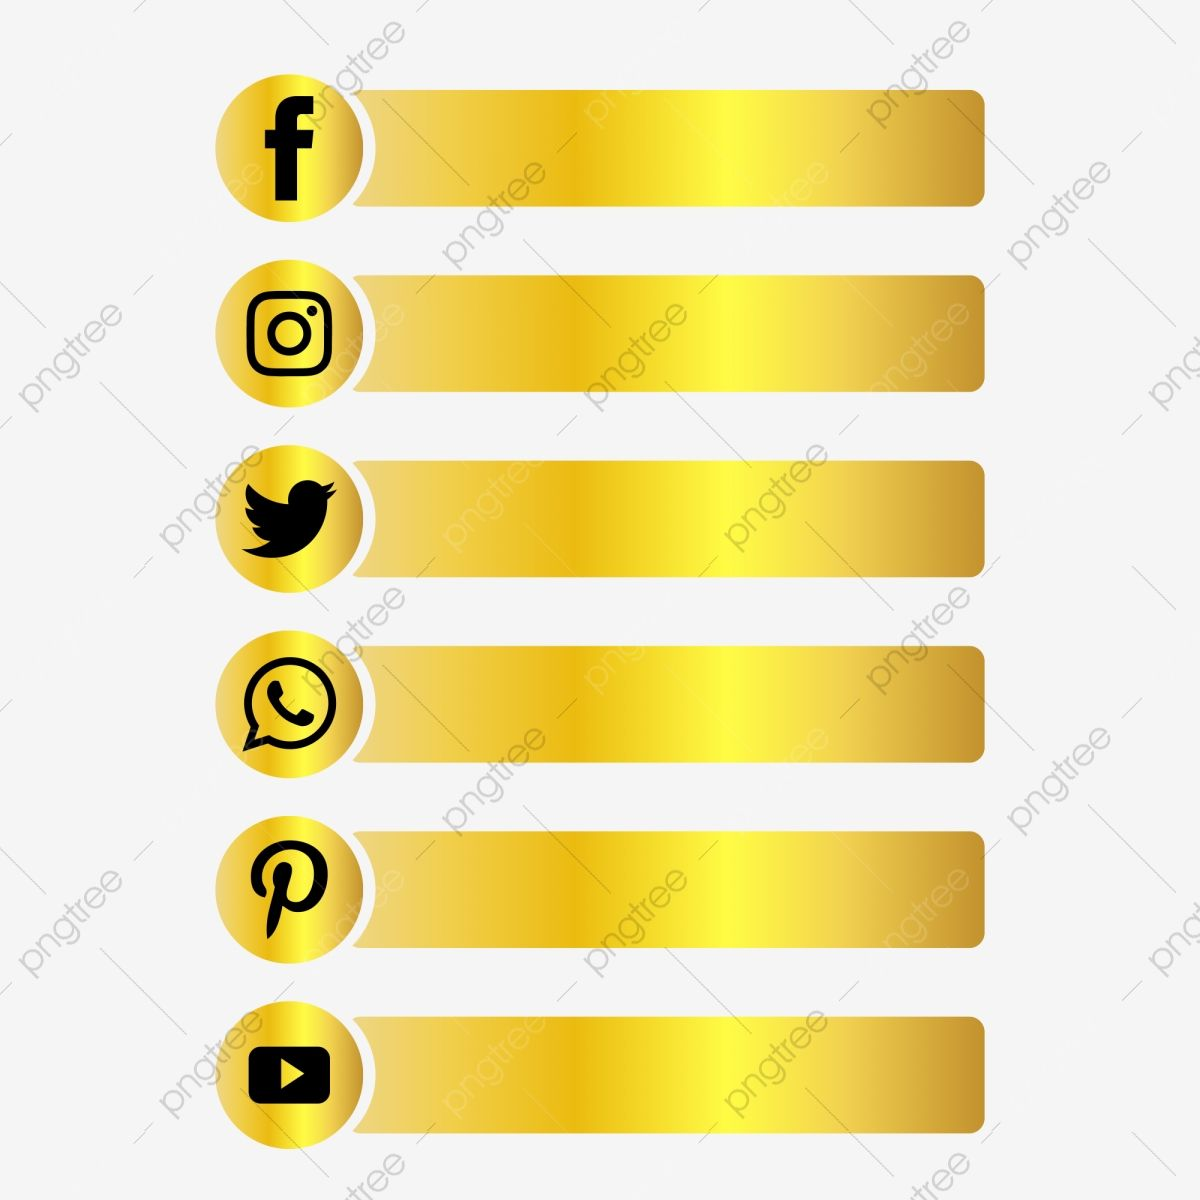 Social Media Gold Button Following Luxury Lower Third Social Media Social Media Logo Social Media Icon Png And Vector With Transparent Background For Free Do Social Media Icons Vector Social Media